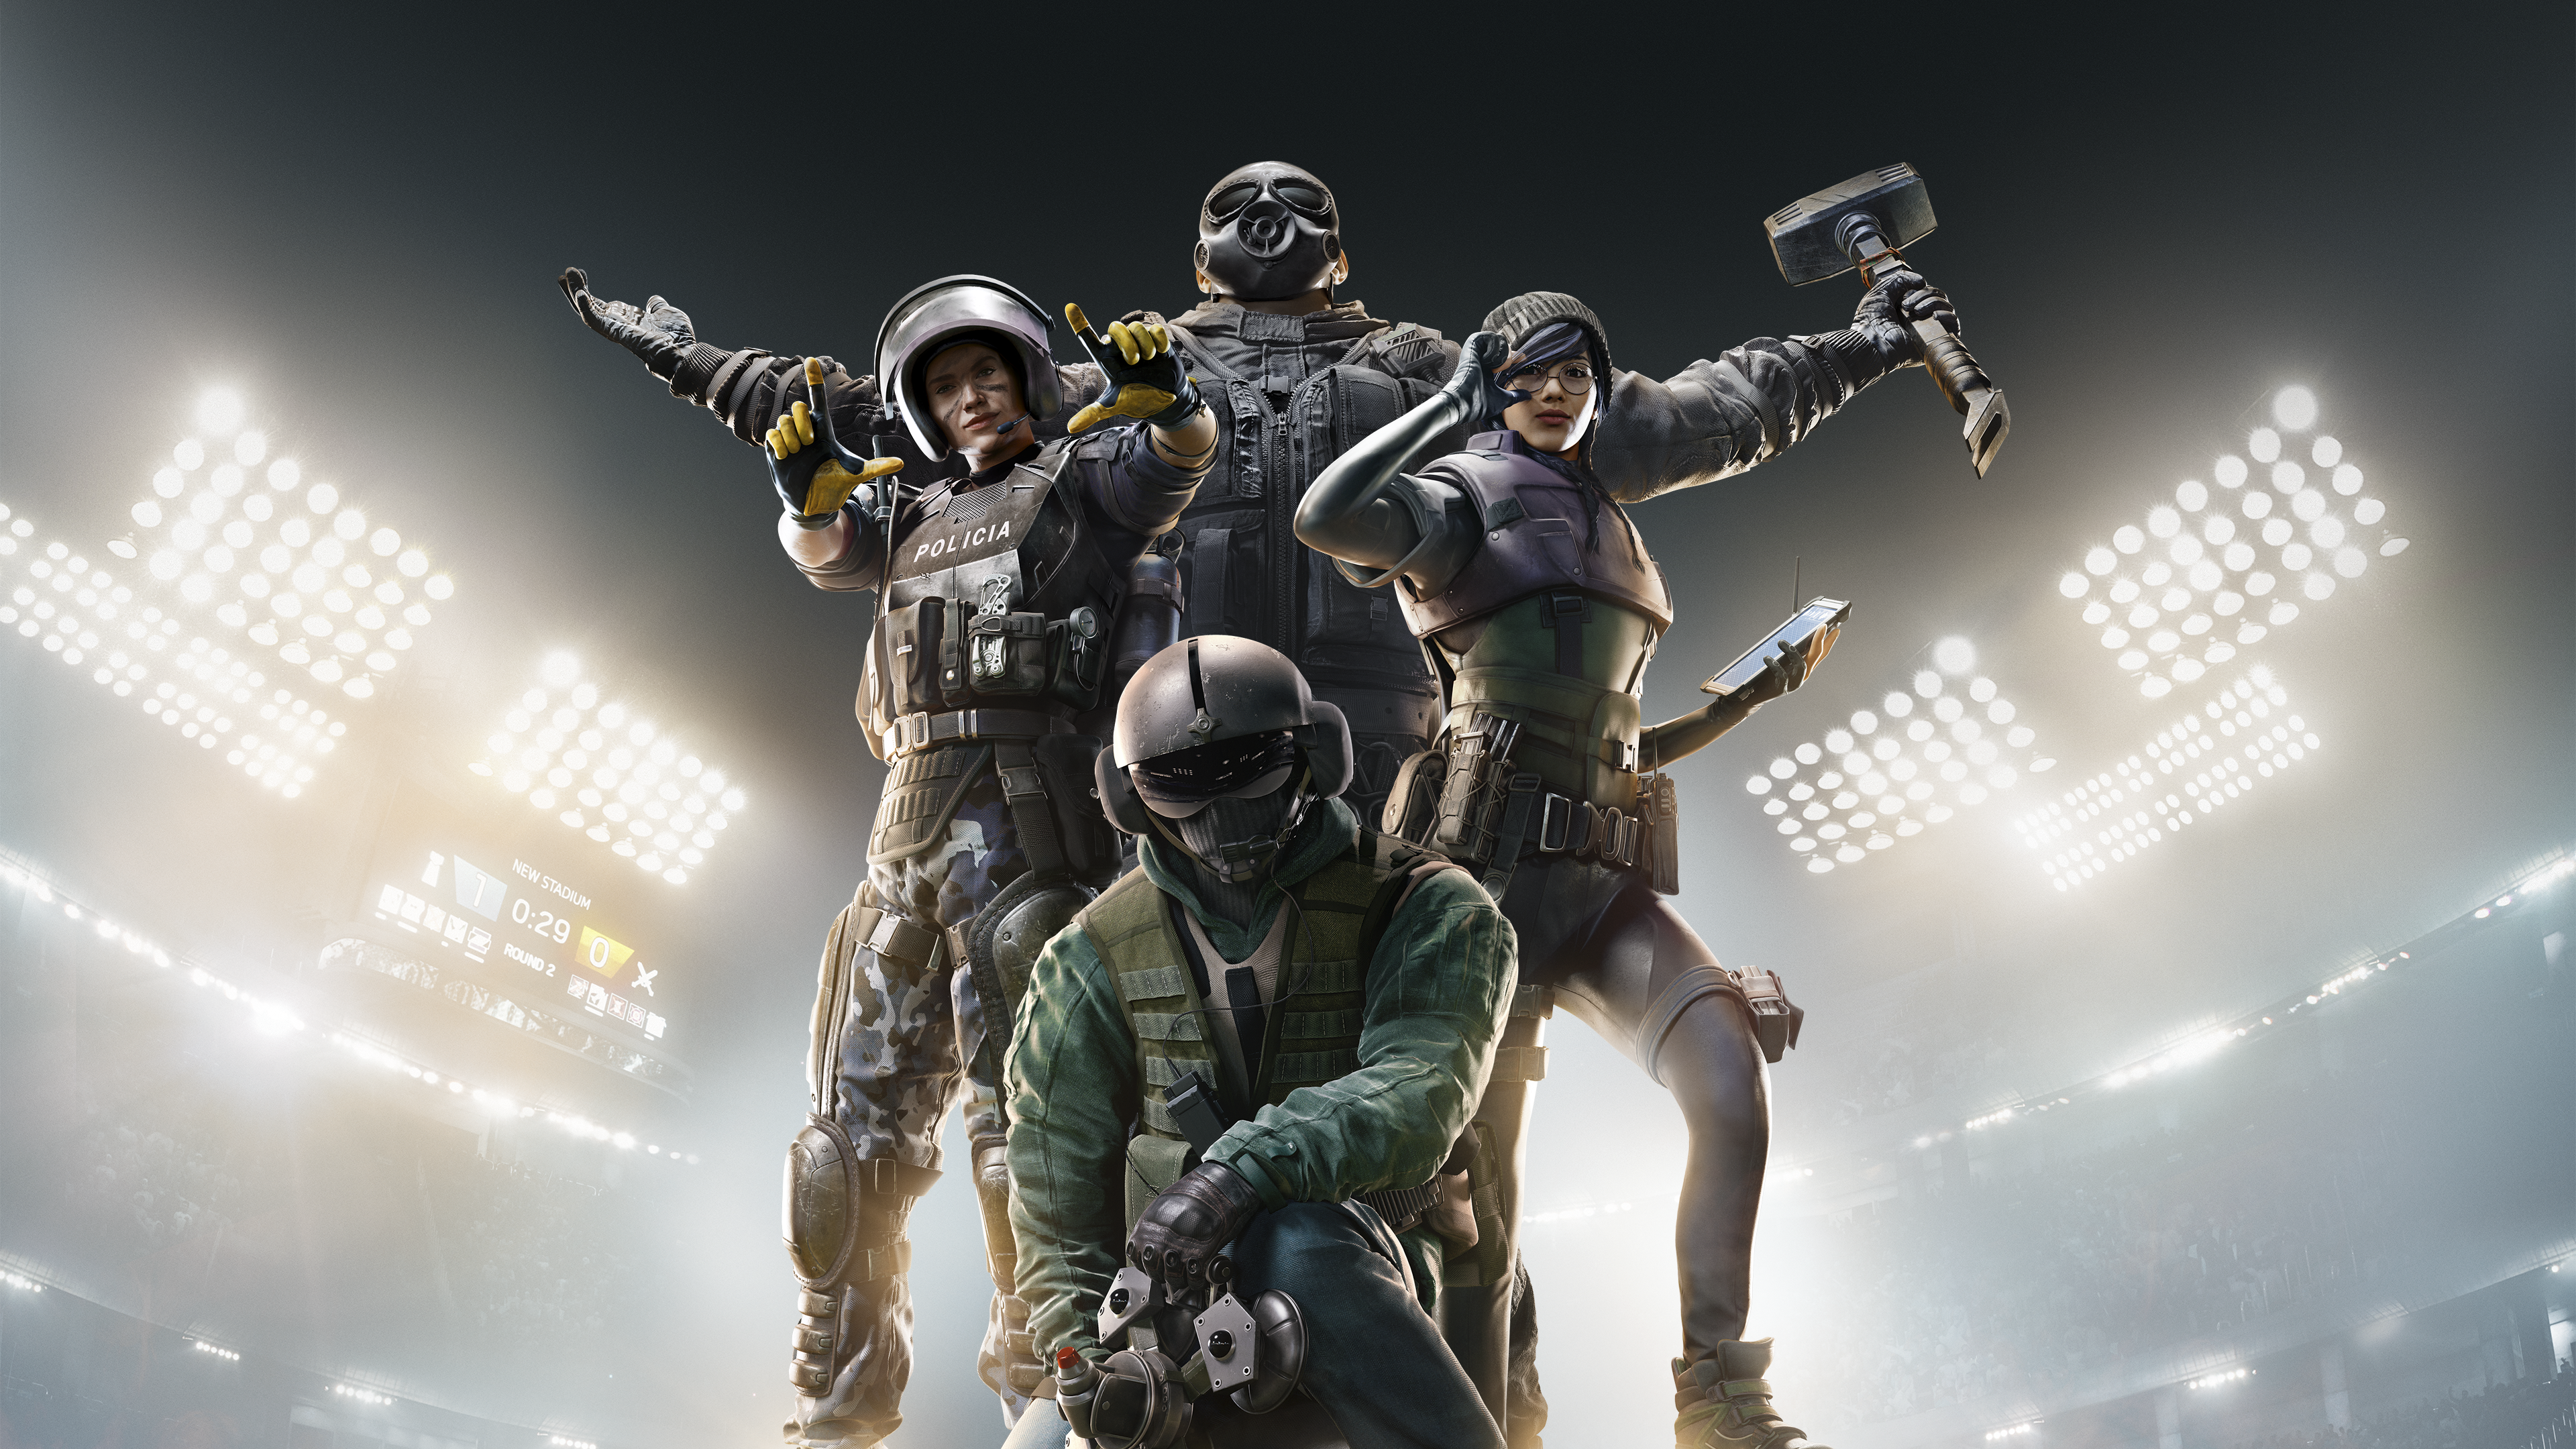 Tom Clancy's Rainbow Six Siege - F11/kryss-tangent Art